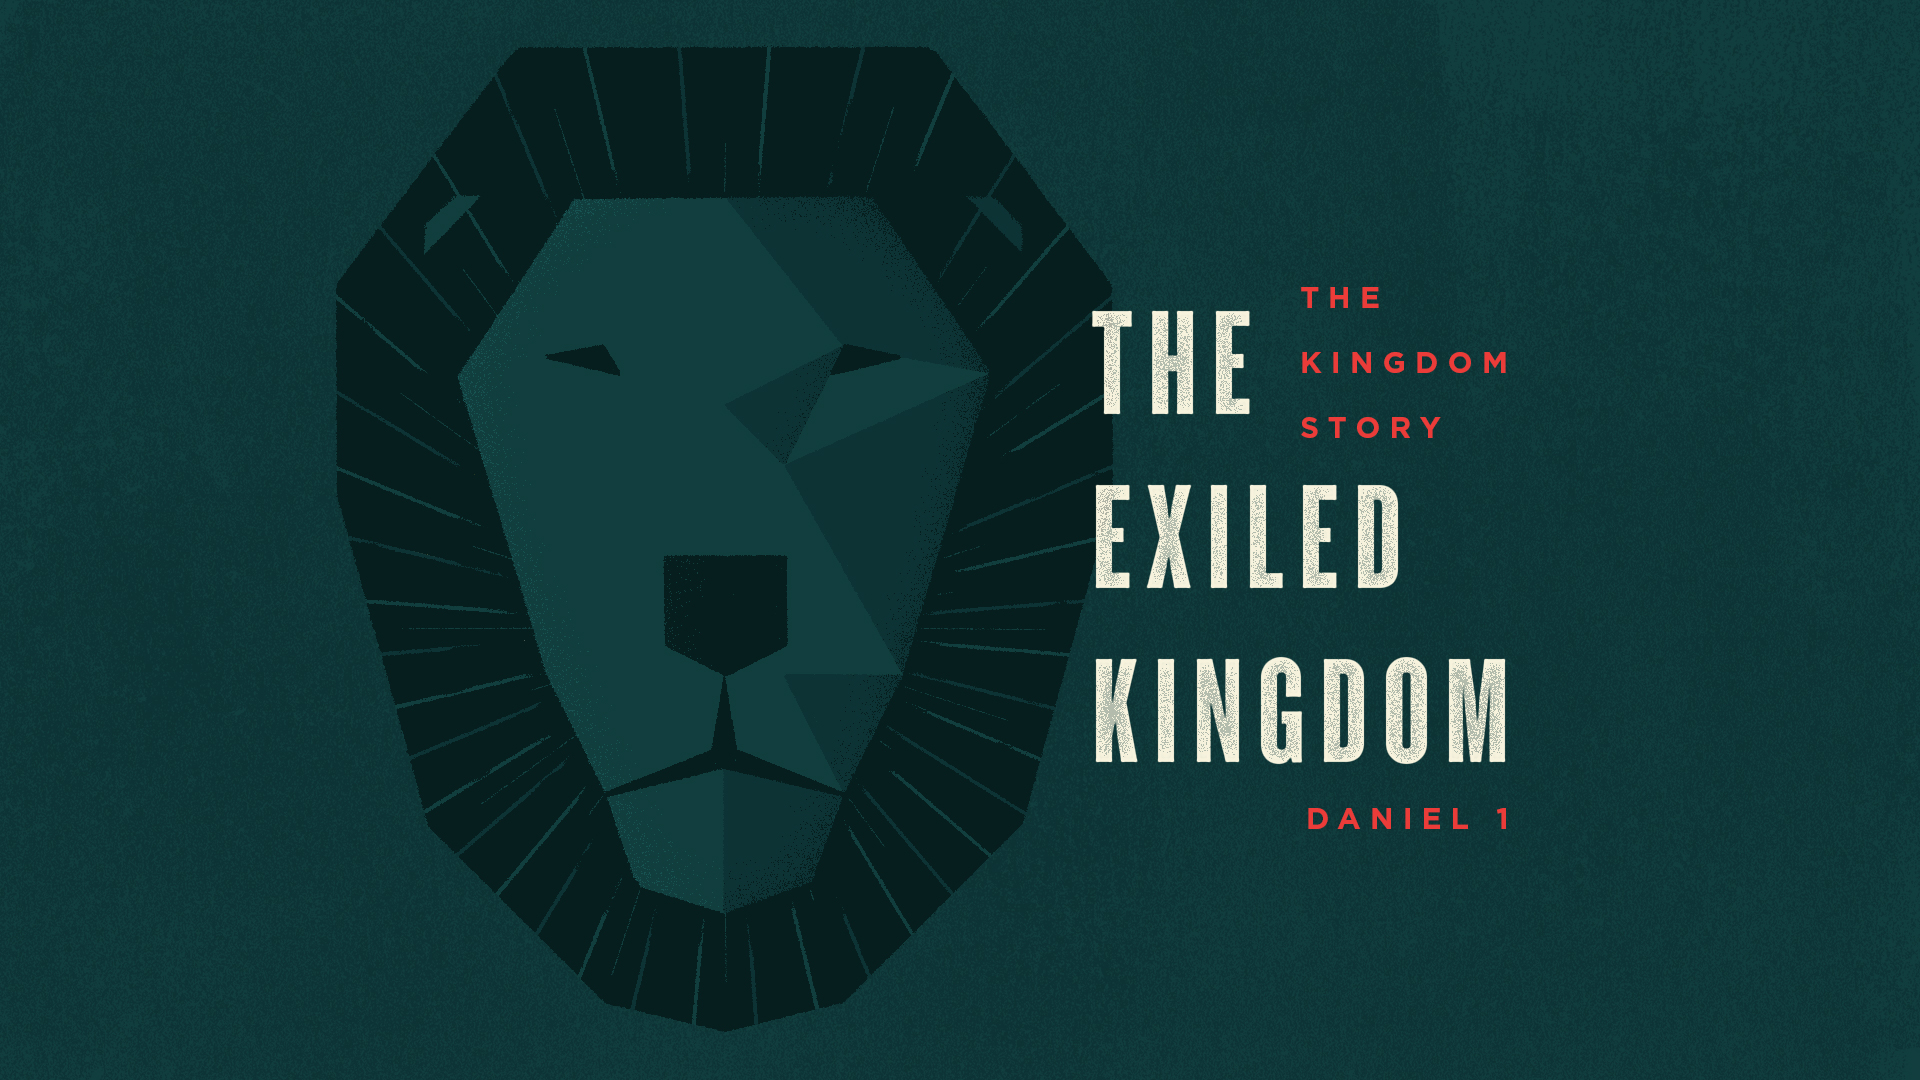 The Exiled Kingdom